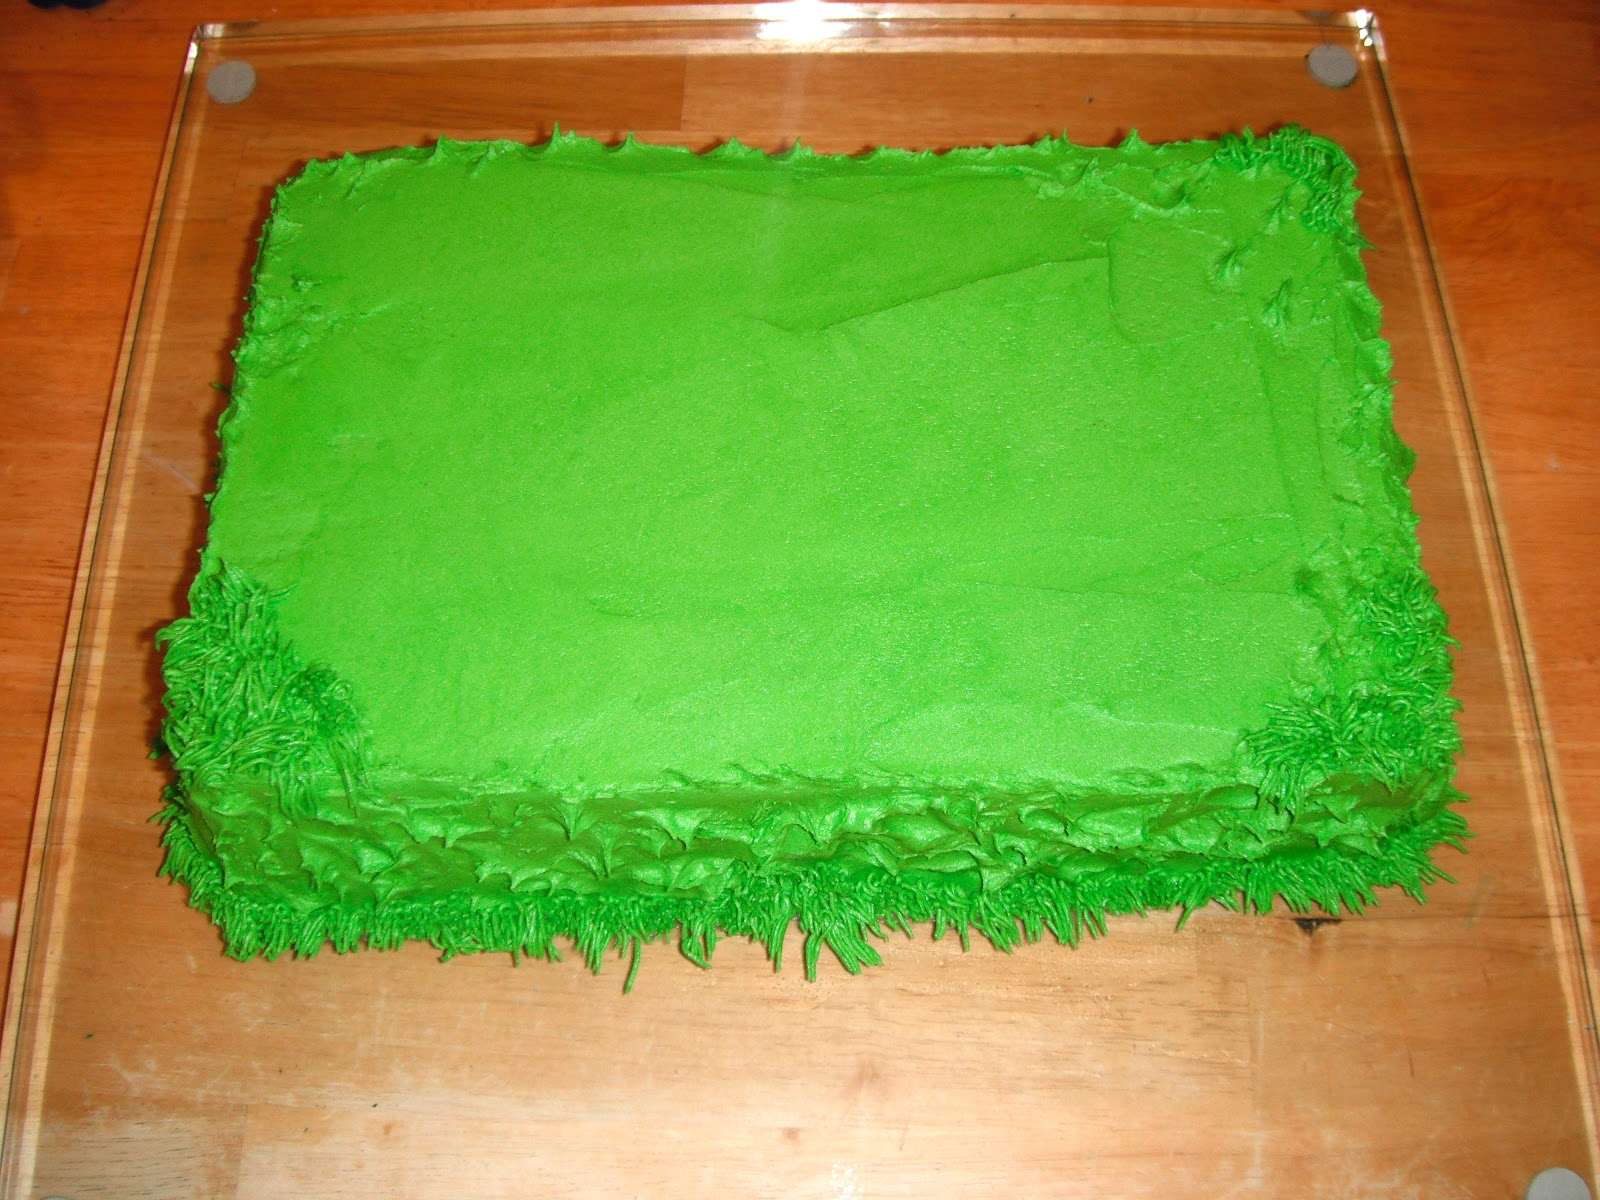 Cake Decorating Making Grass : P-ART-Y: How to Make a Soccer Goal Post Cake